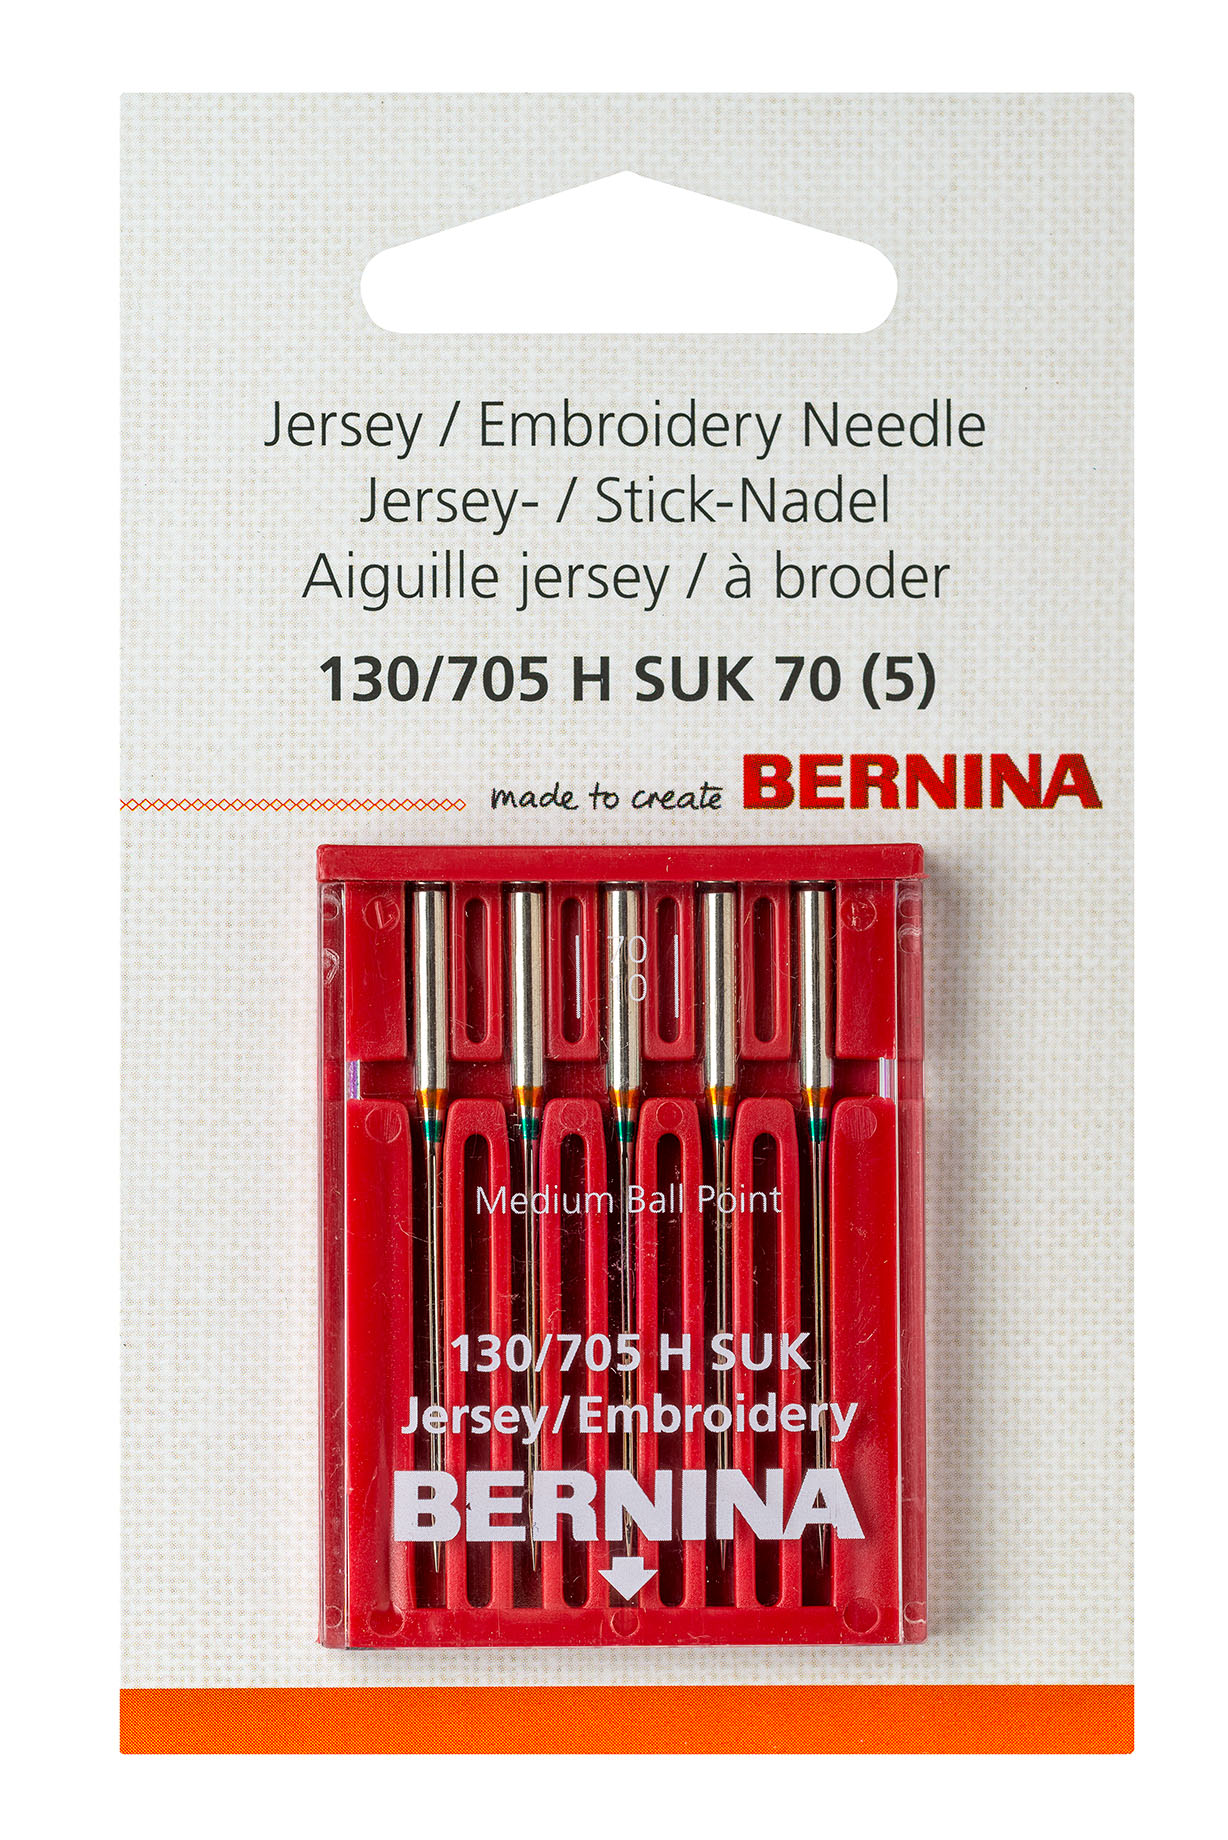 Jersey / embroidery needle